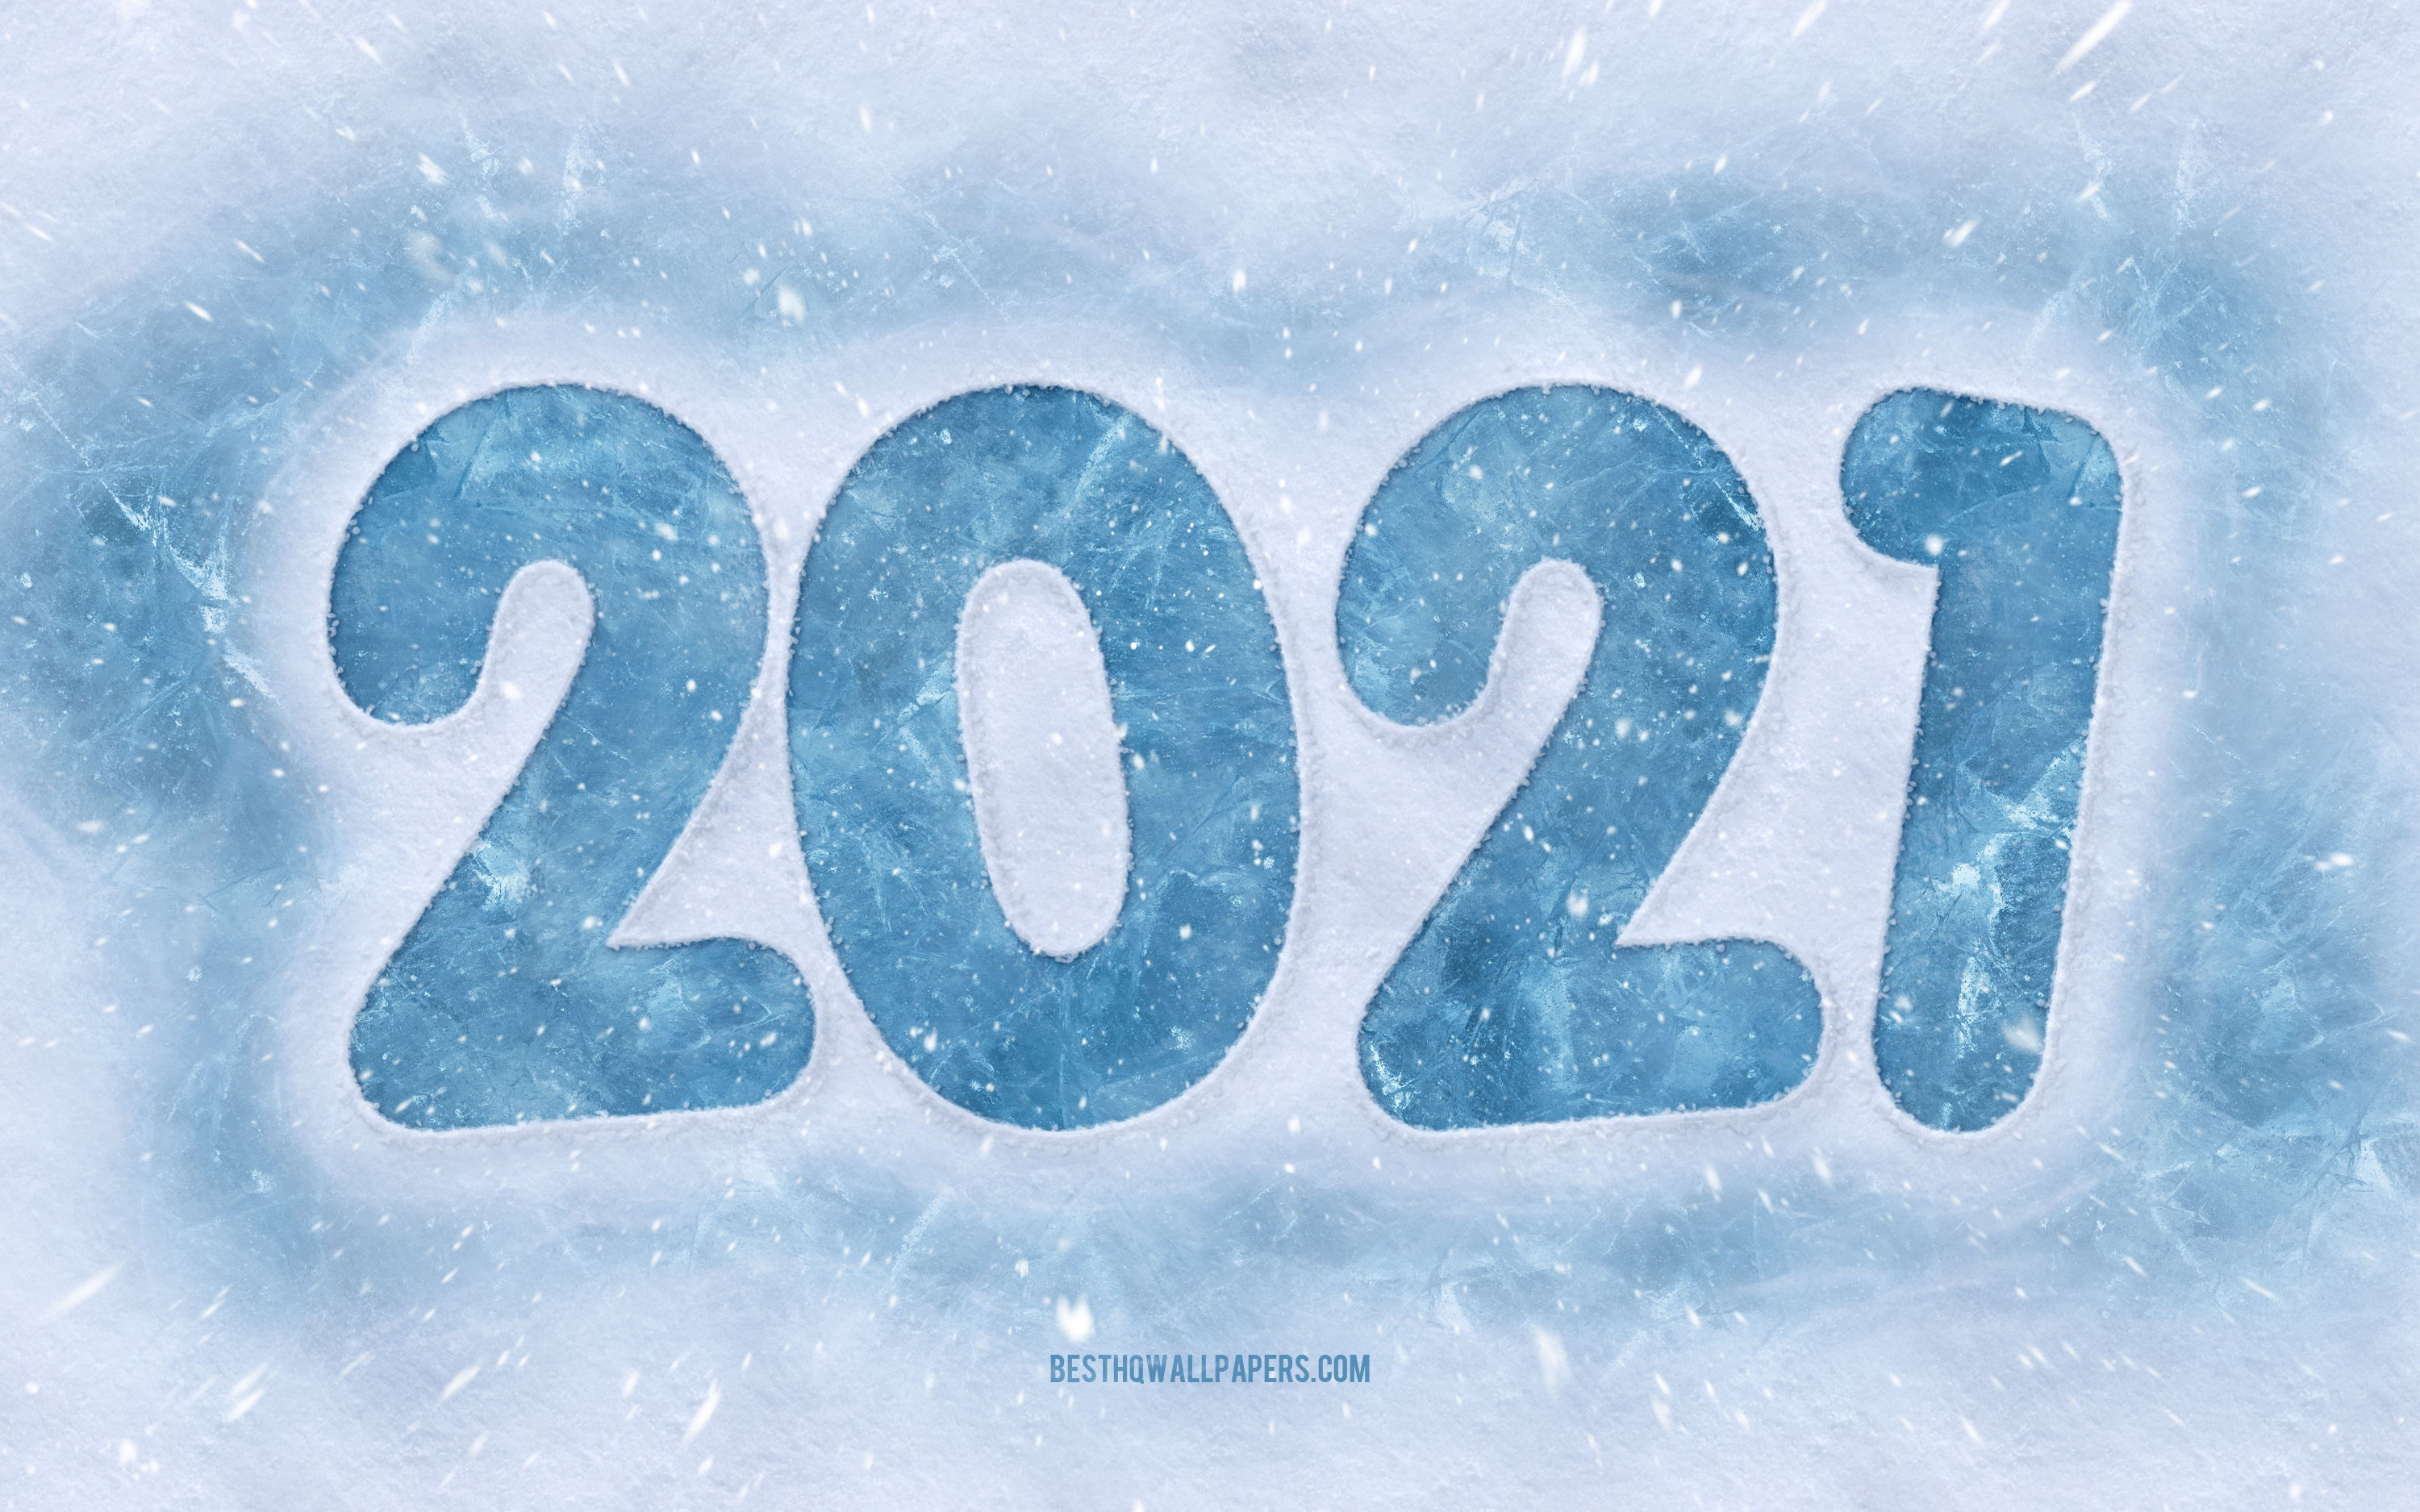 Download wallpapers 2021 New Year 2021 Winter background Happy 3000x1875